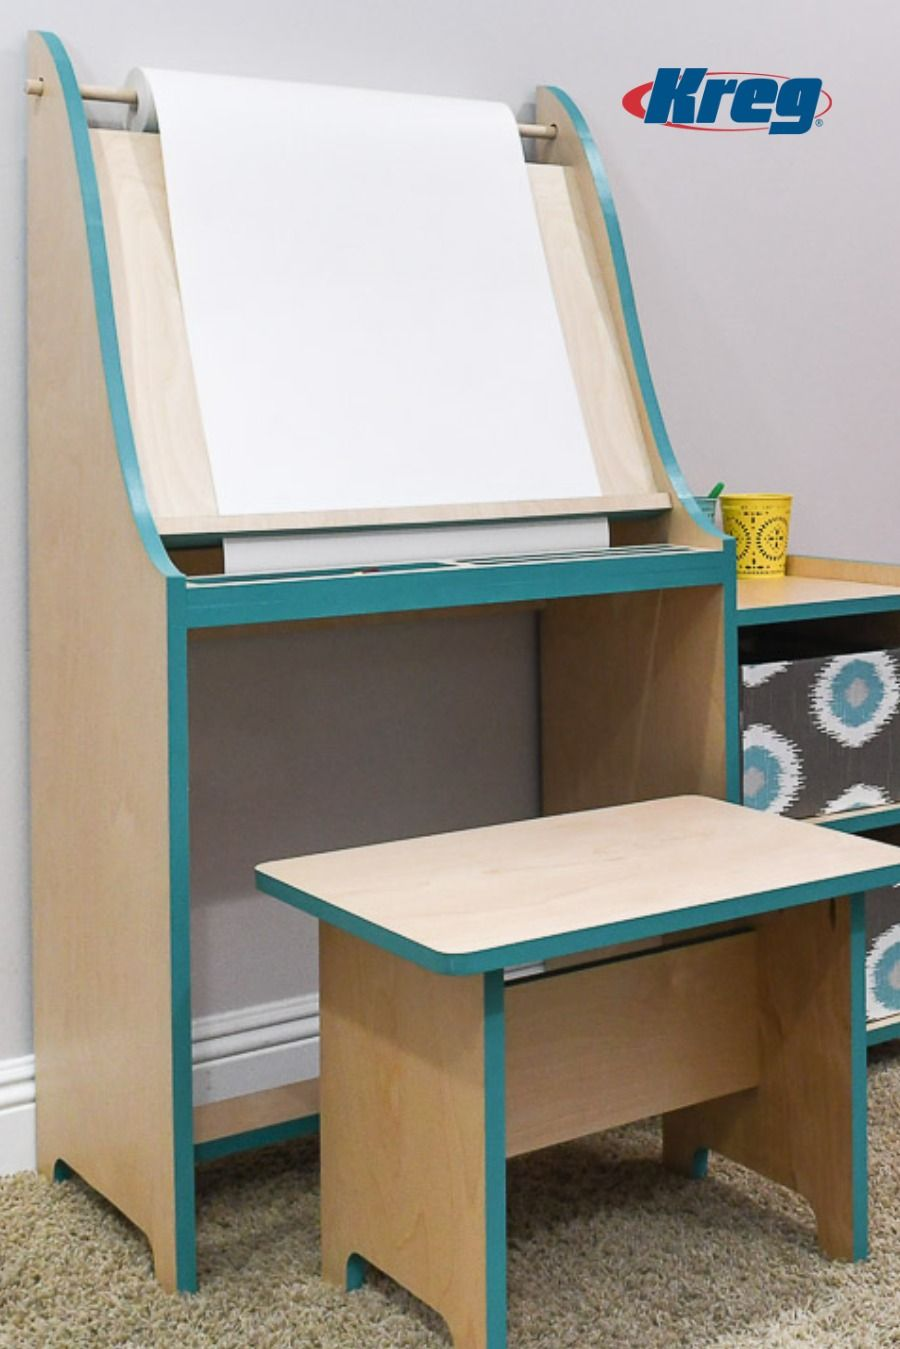 Build This Beautiful Kids Art Table Complete With Easel From Just 1 Sheet Of 3 4 Plywood This Art Table Is Per Kids Art Table Diy Kids Art Table Art Table